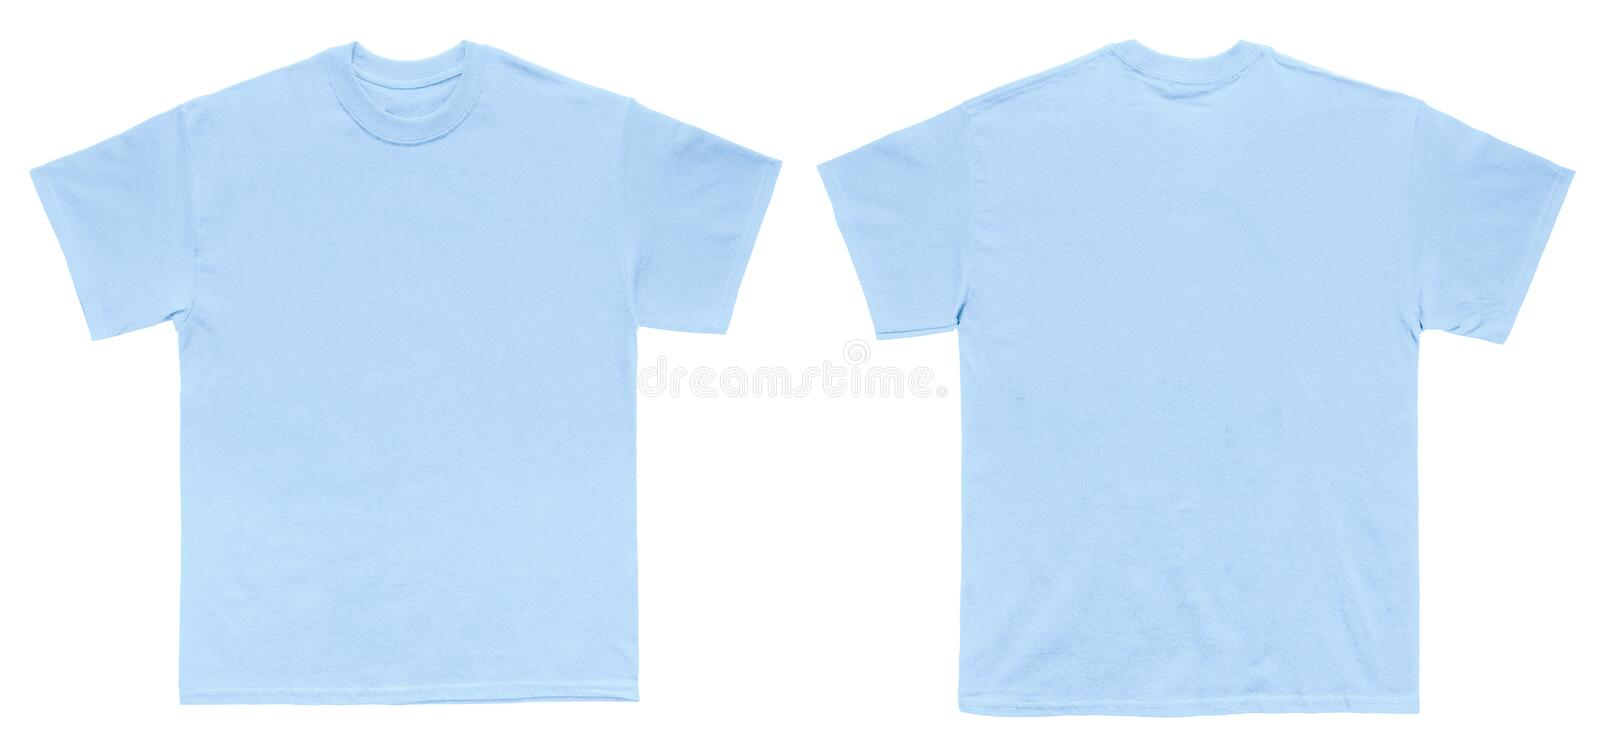 Blank t shirt color light blue template front and back for Blue t shirt template